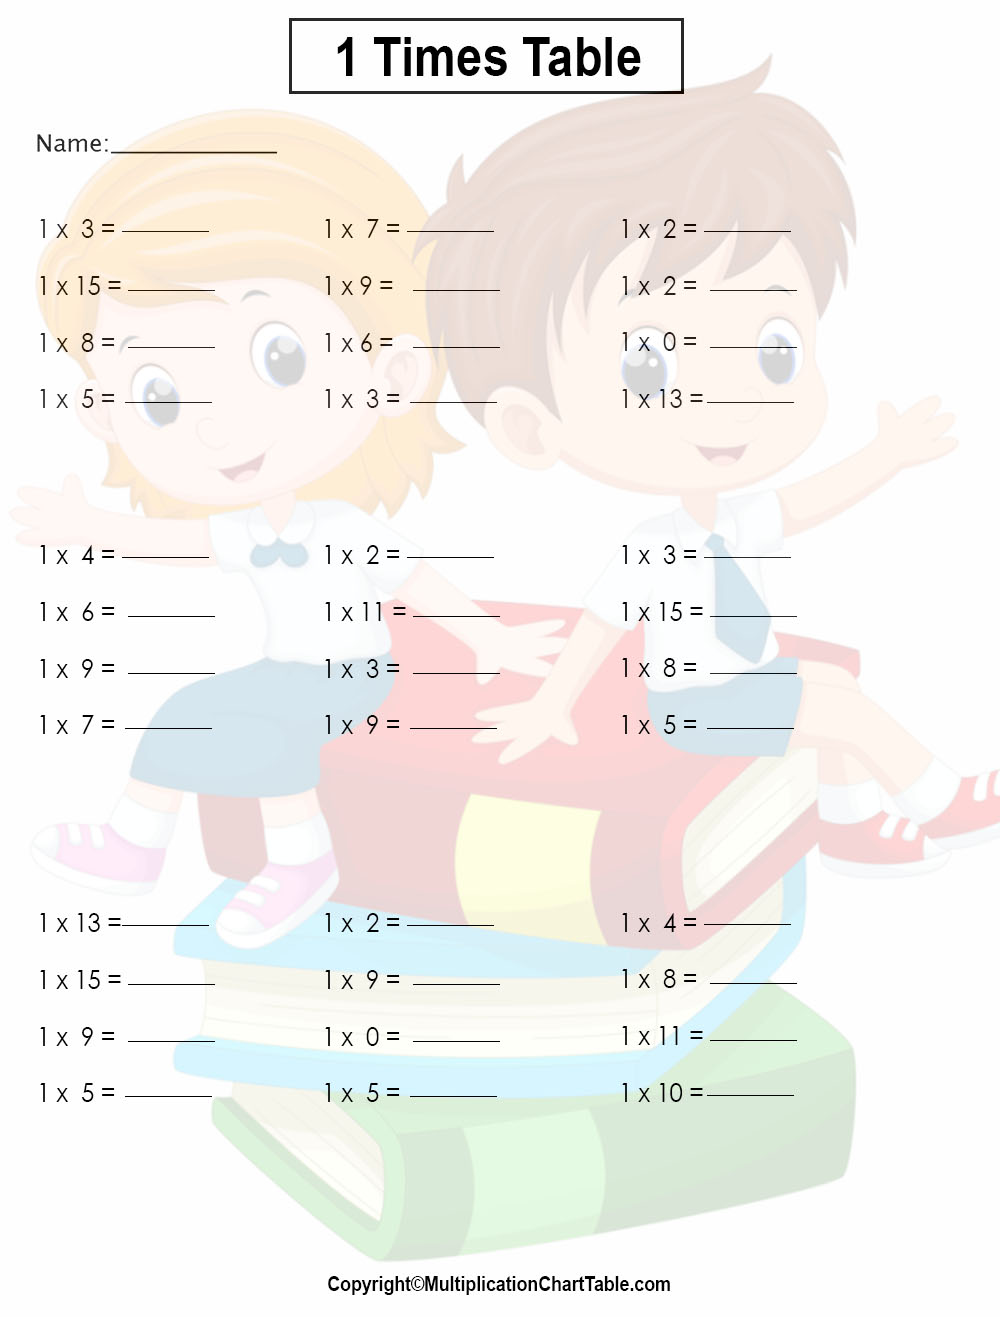 1 times table worksheets